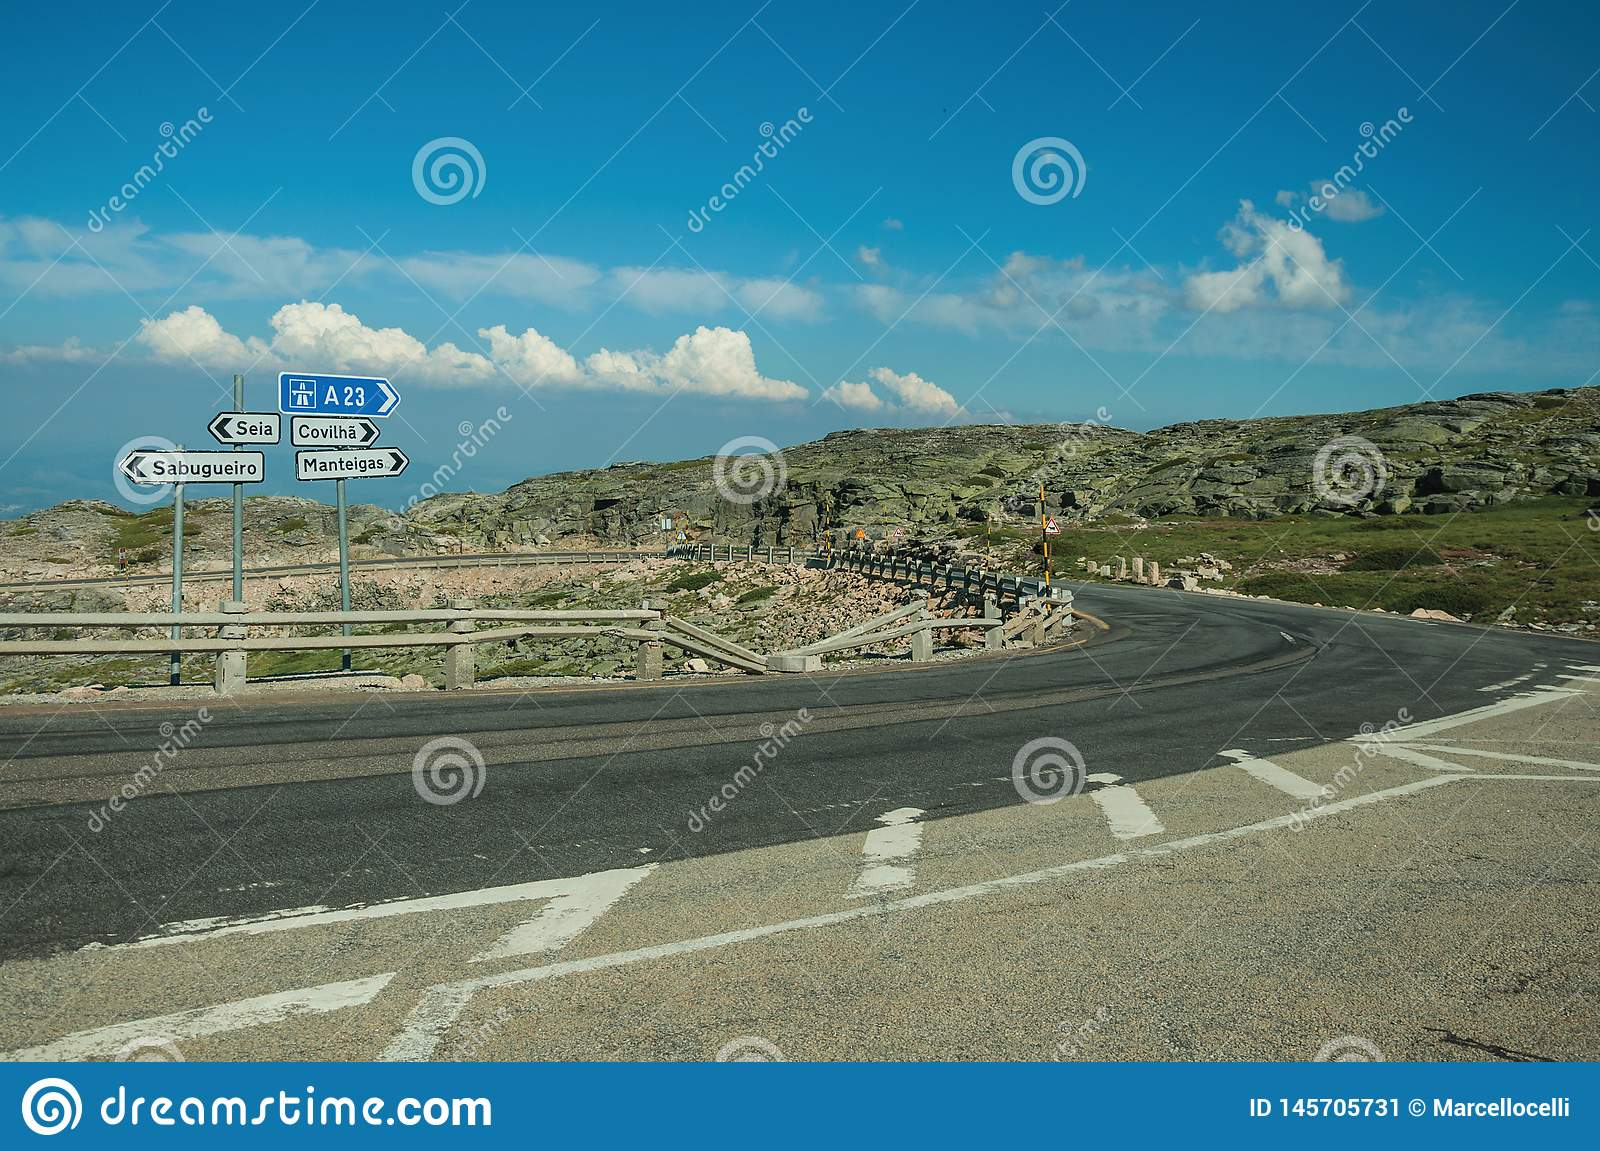 Signposts with town directions on road crossing rocky landscape